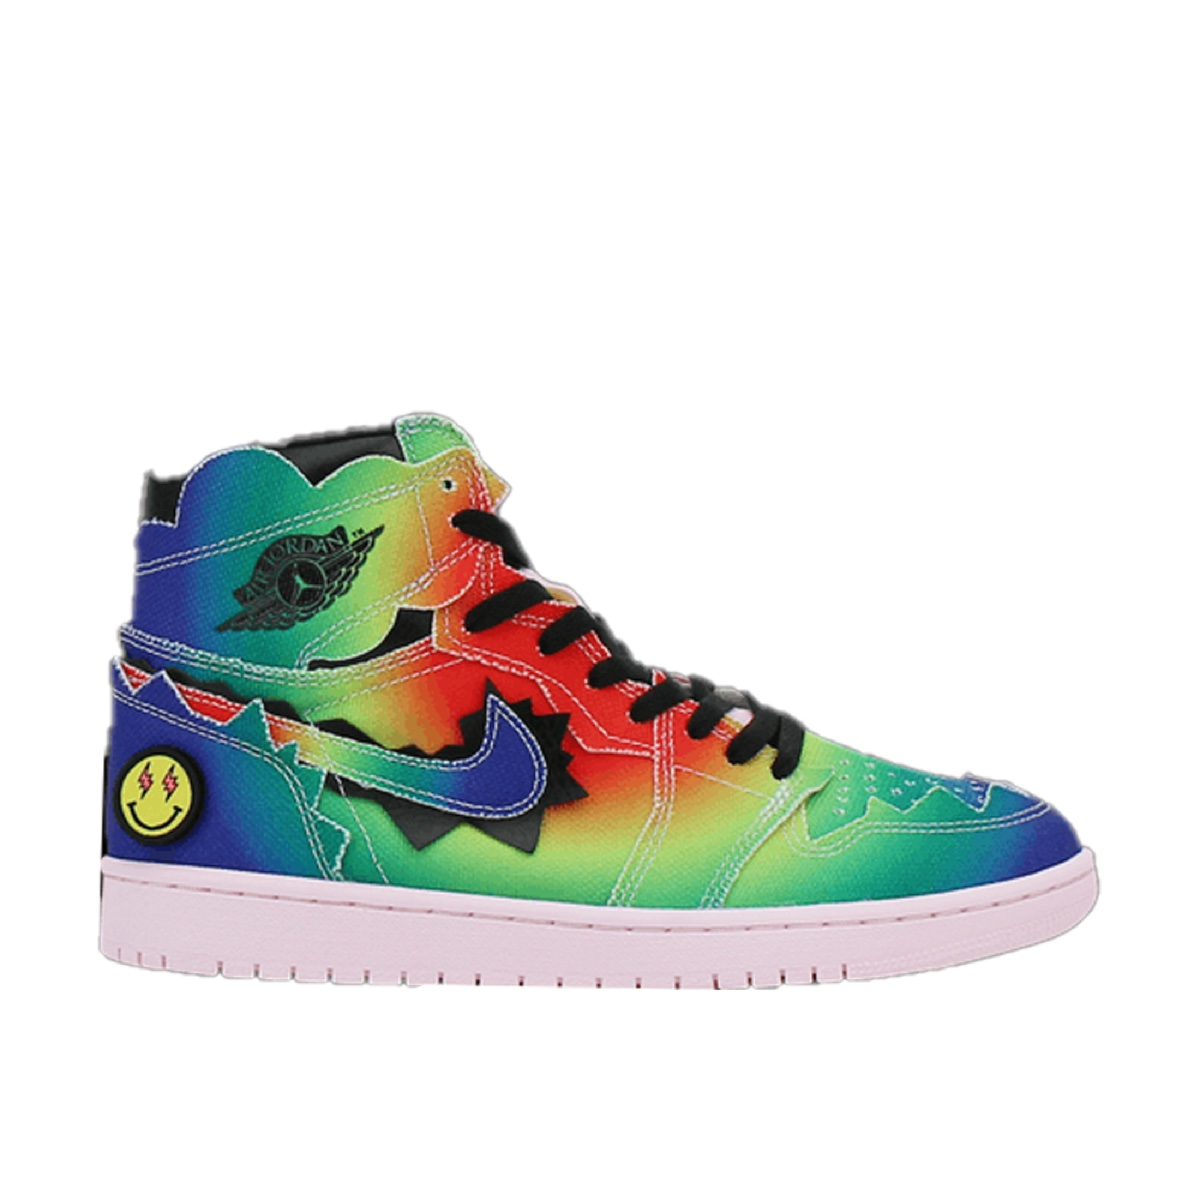 J Balvin x Air Jordan 1 Retro OG High Colores Y Vibras